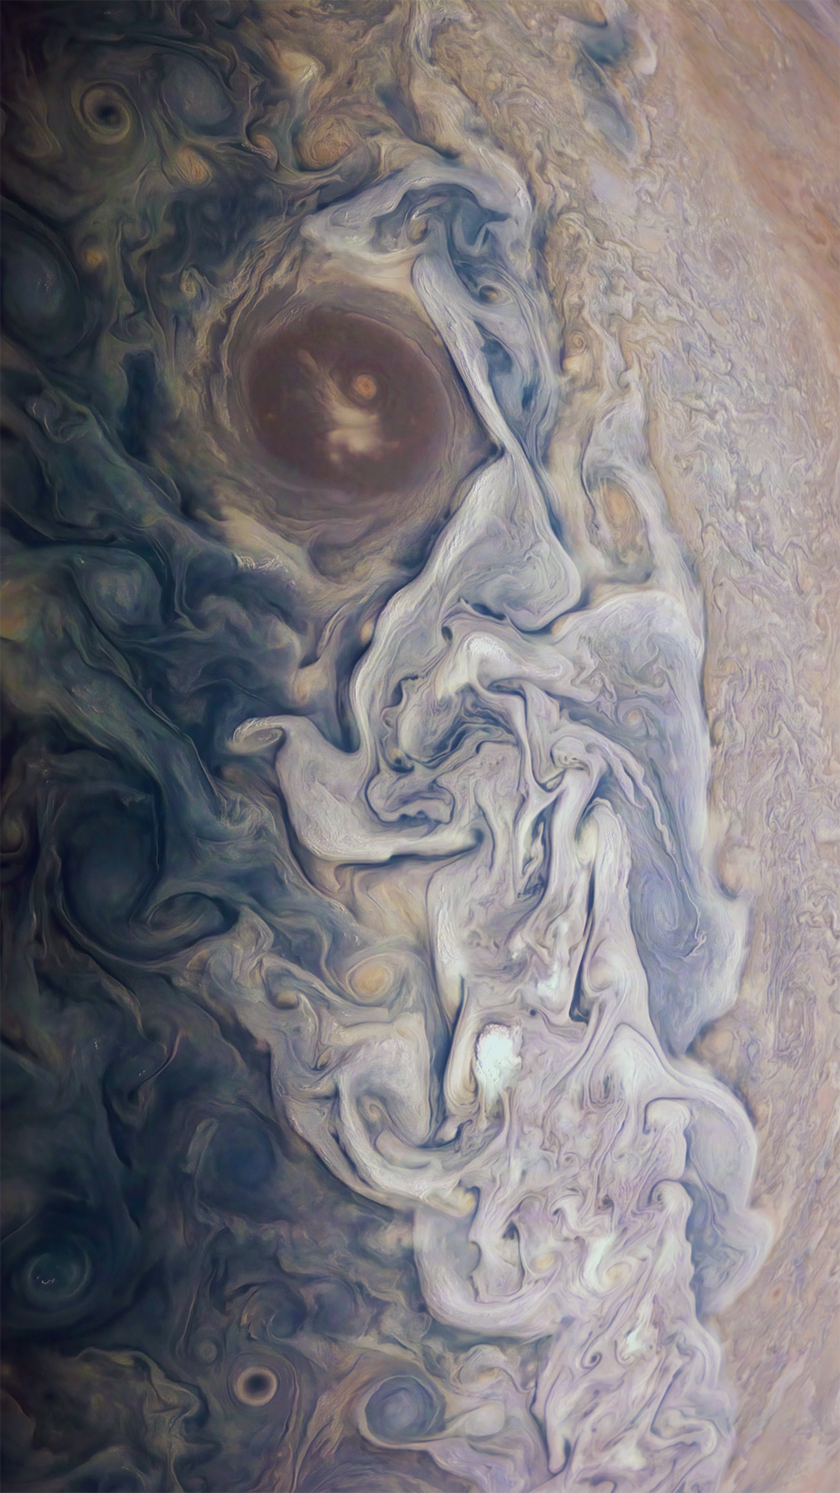 Jupiter's swirling clouds